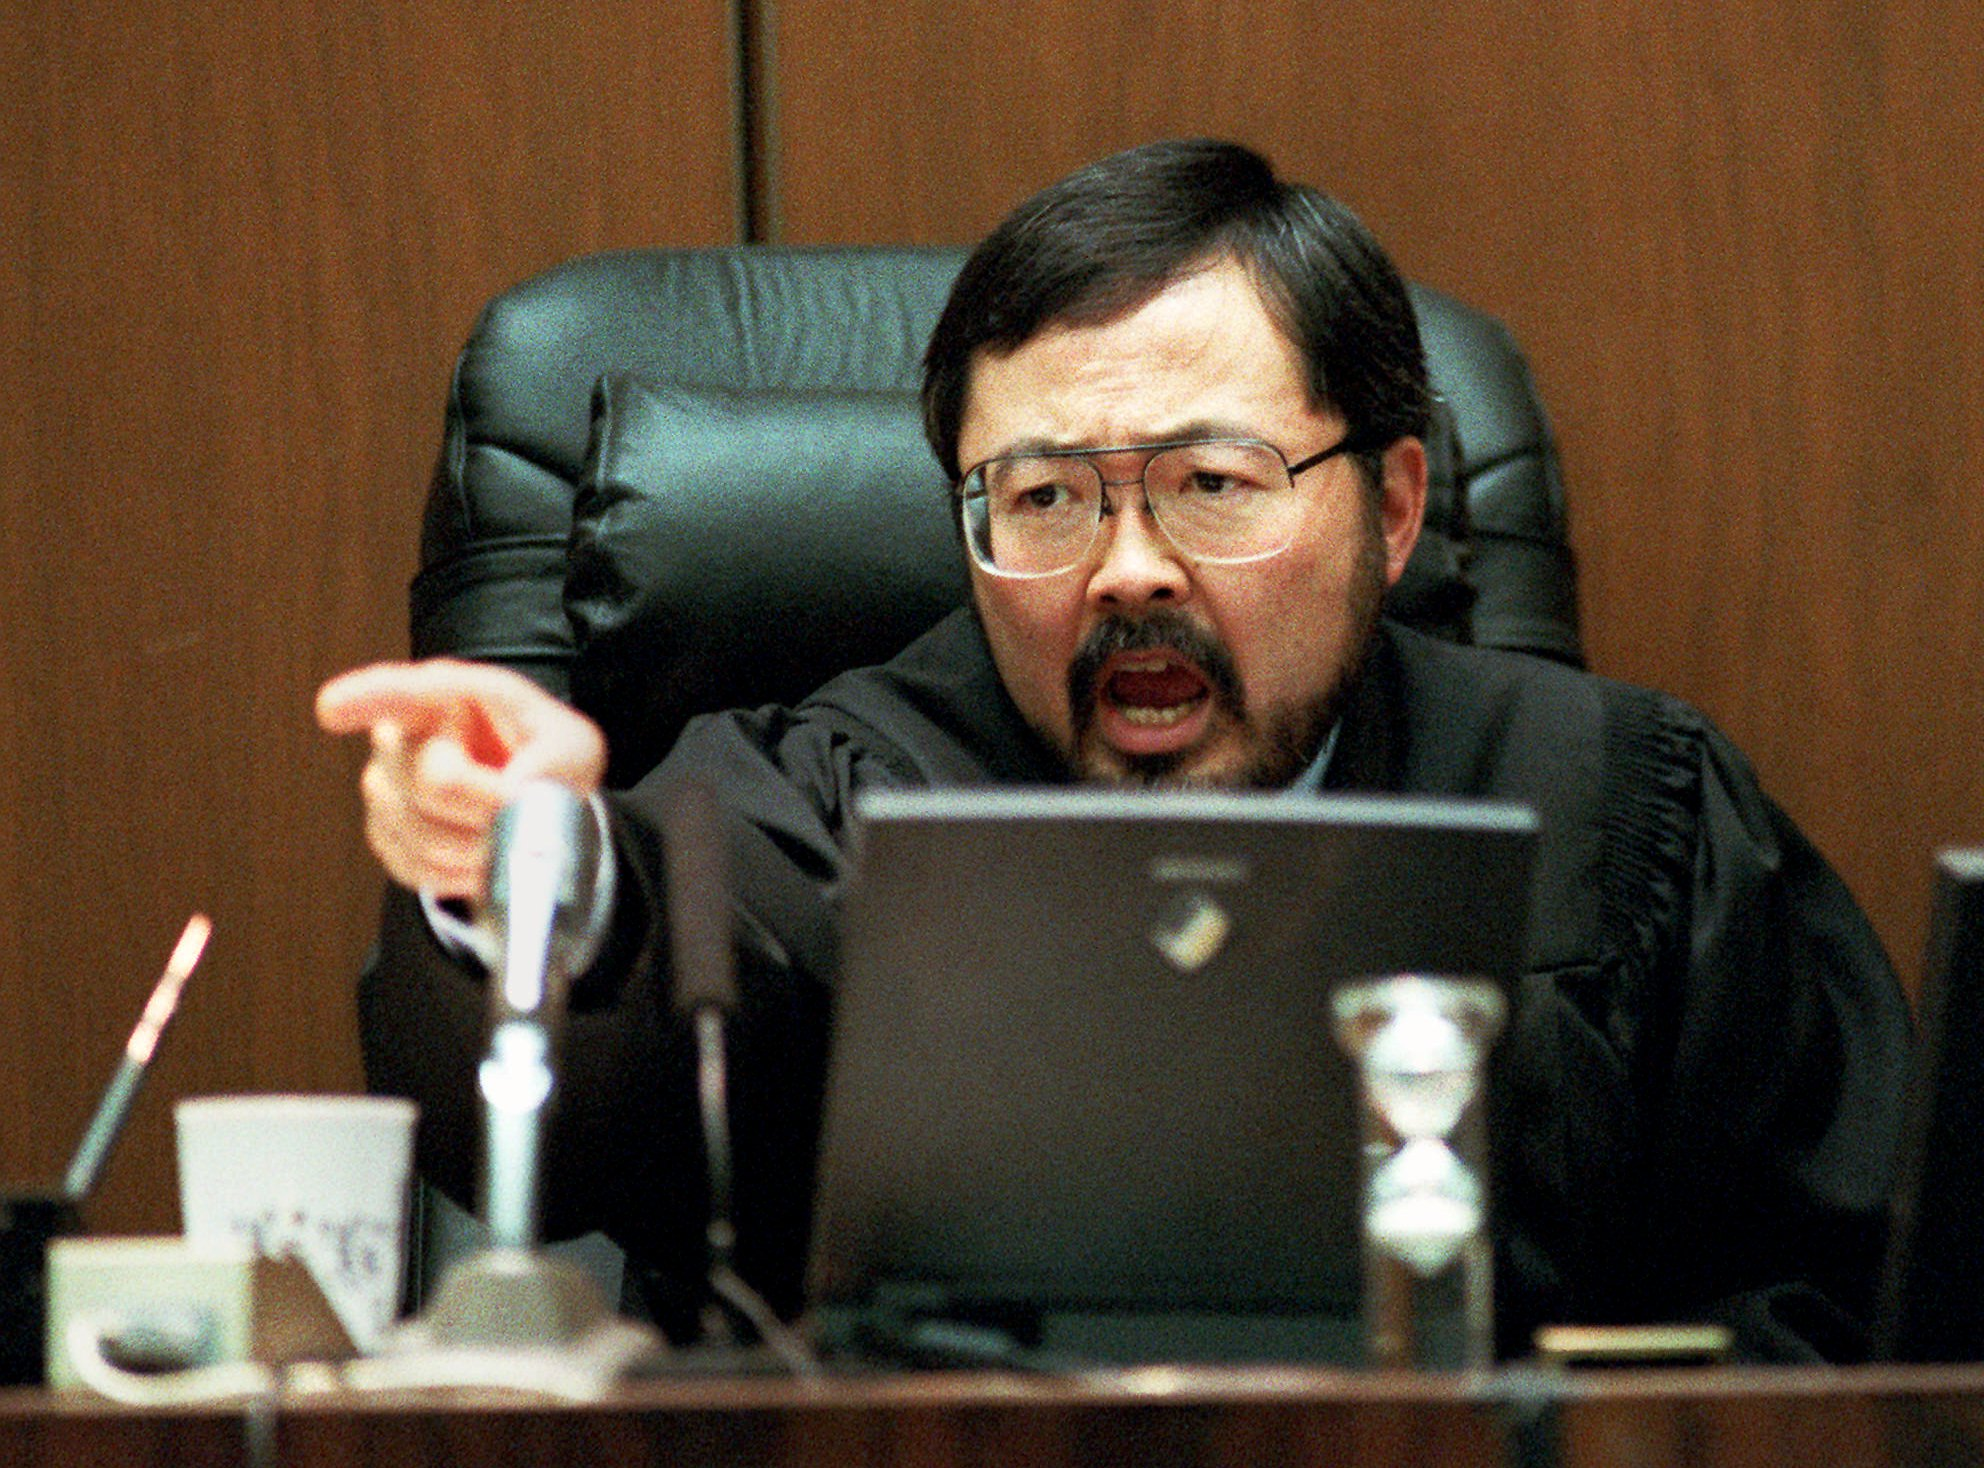 Los Angeles Superior Court Judge Lance Ito yells in court during the O.J. Simpson double-murder trial in Los Angeles Friday, Sept. 29, 1995. (AP Photo/Eric Draper, Pool)